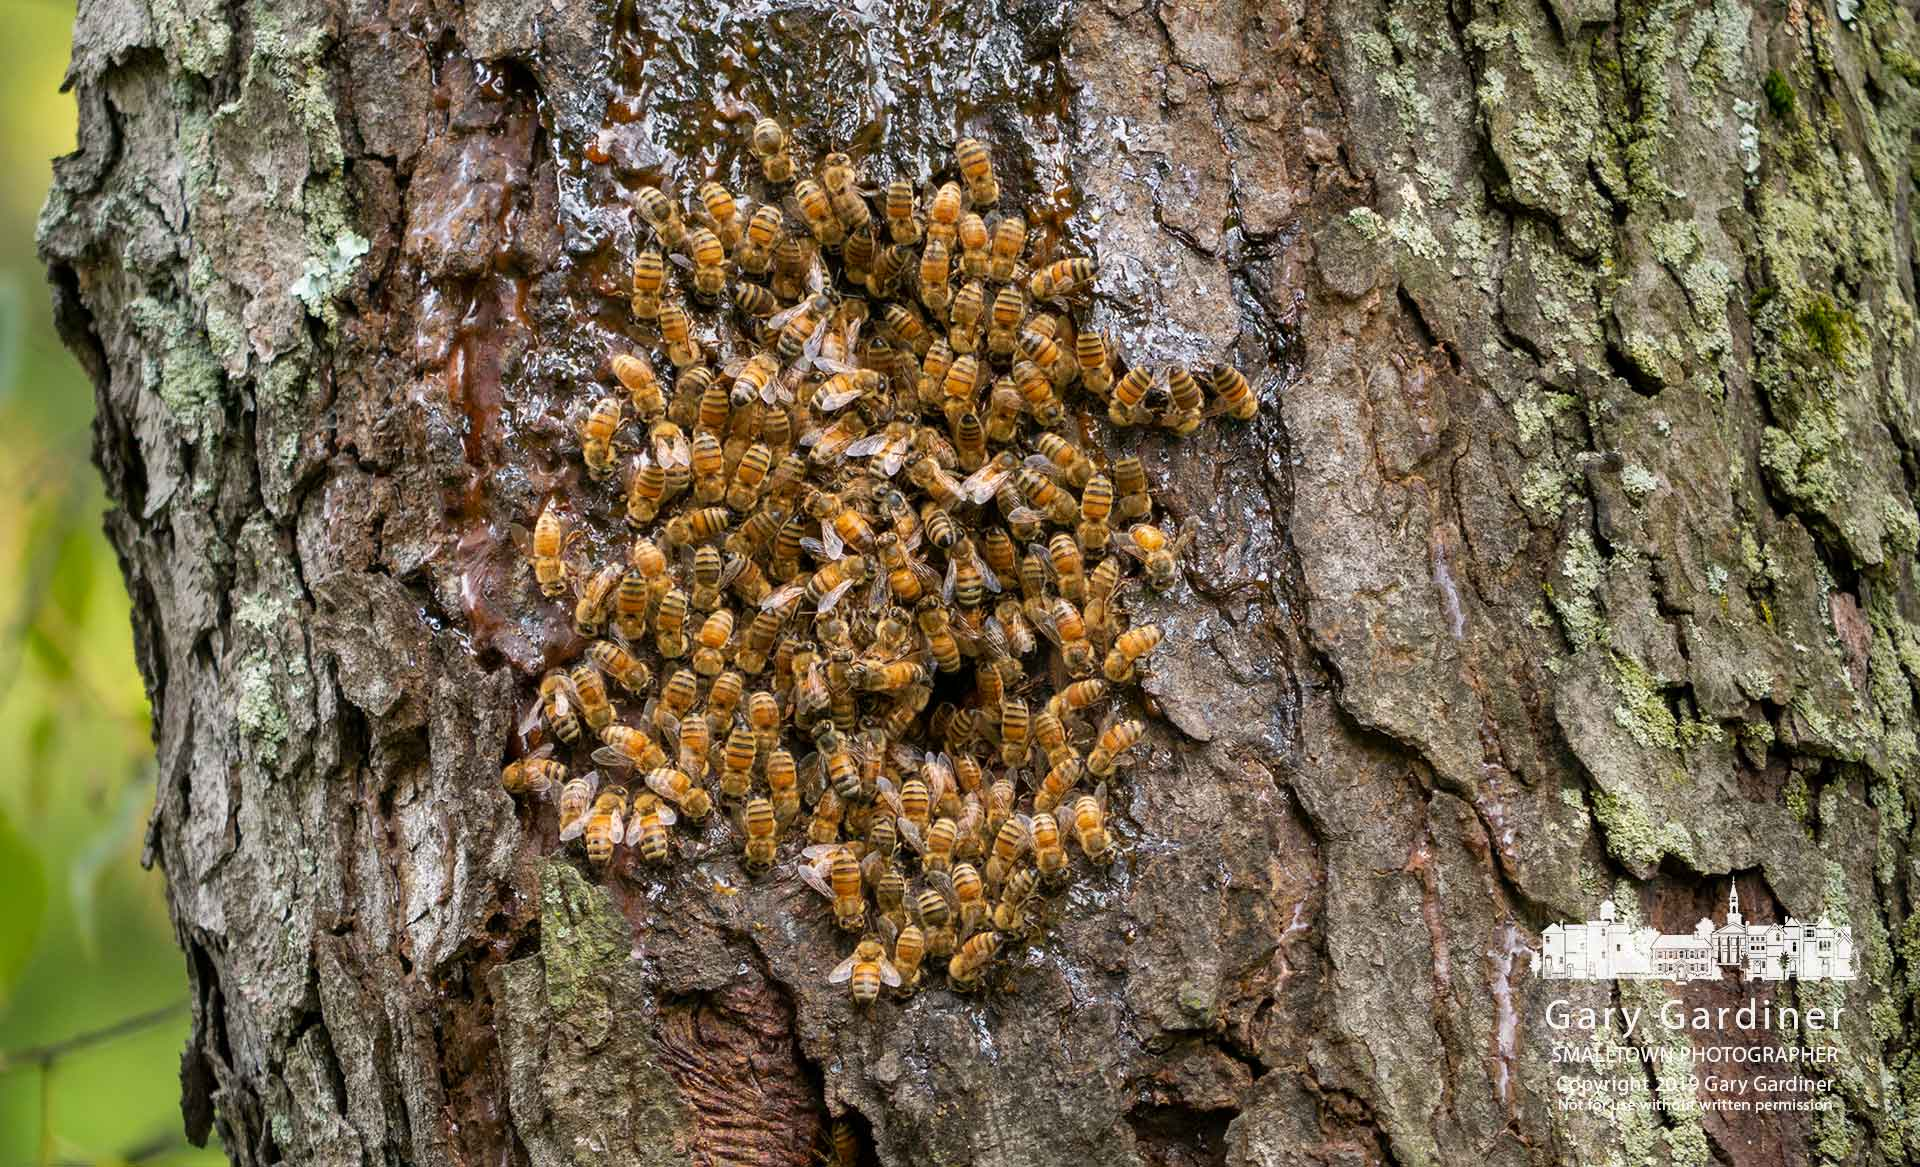 Bees gather at the entrance to their hive in an old tree at the edge of Hoover Reservoir in Red Bank Park. My Final Photo for Aug. 31, 2019.